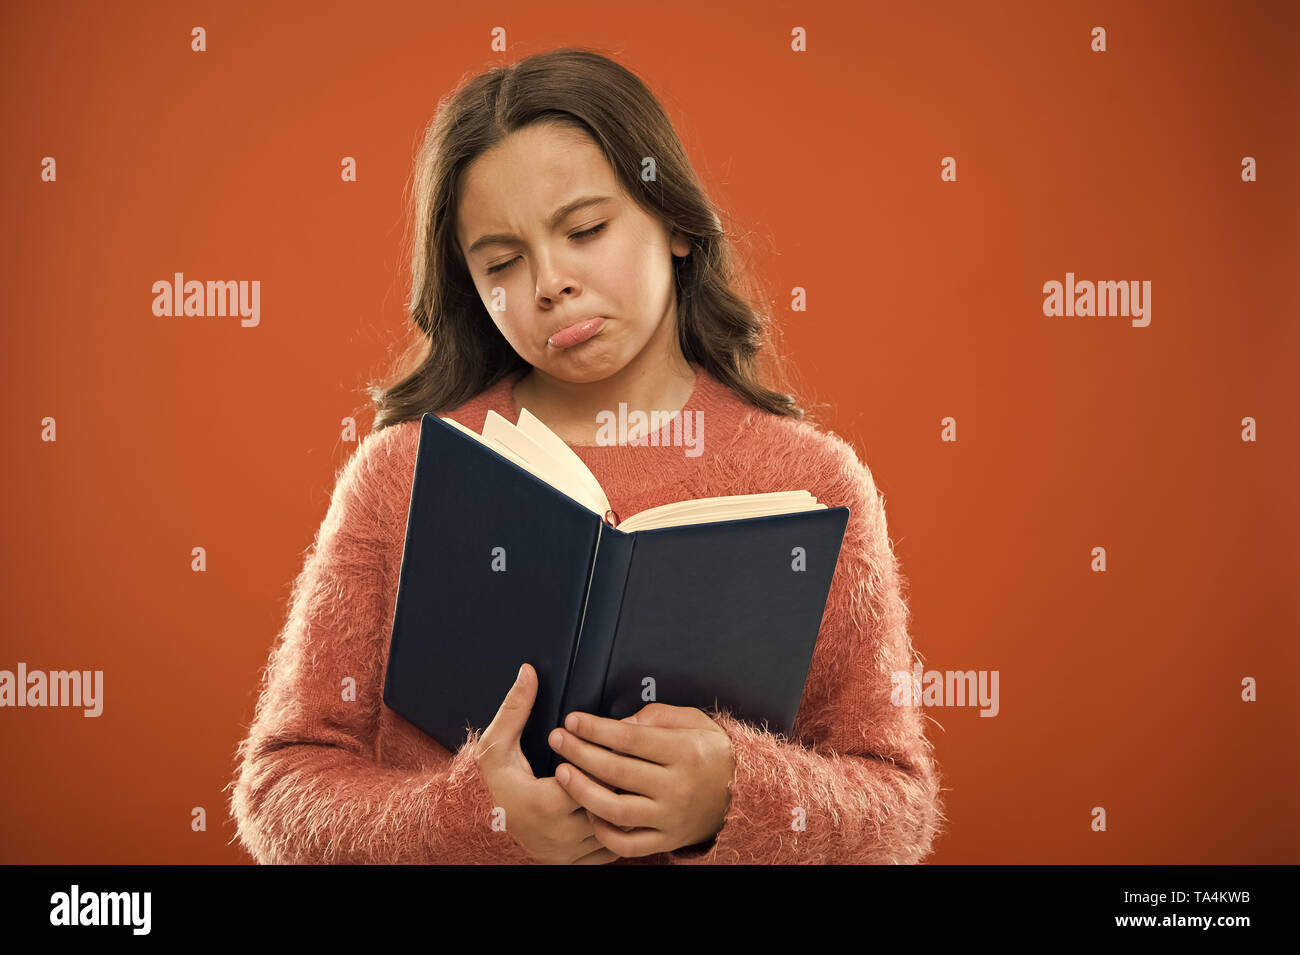 Girl hold book read story over orange background. Child enjoy reading book. Book store concept. Wonderful free childrens books available to read. Childrens literature. Sad ending story. - Stock Image